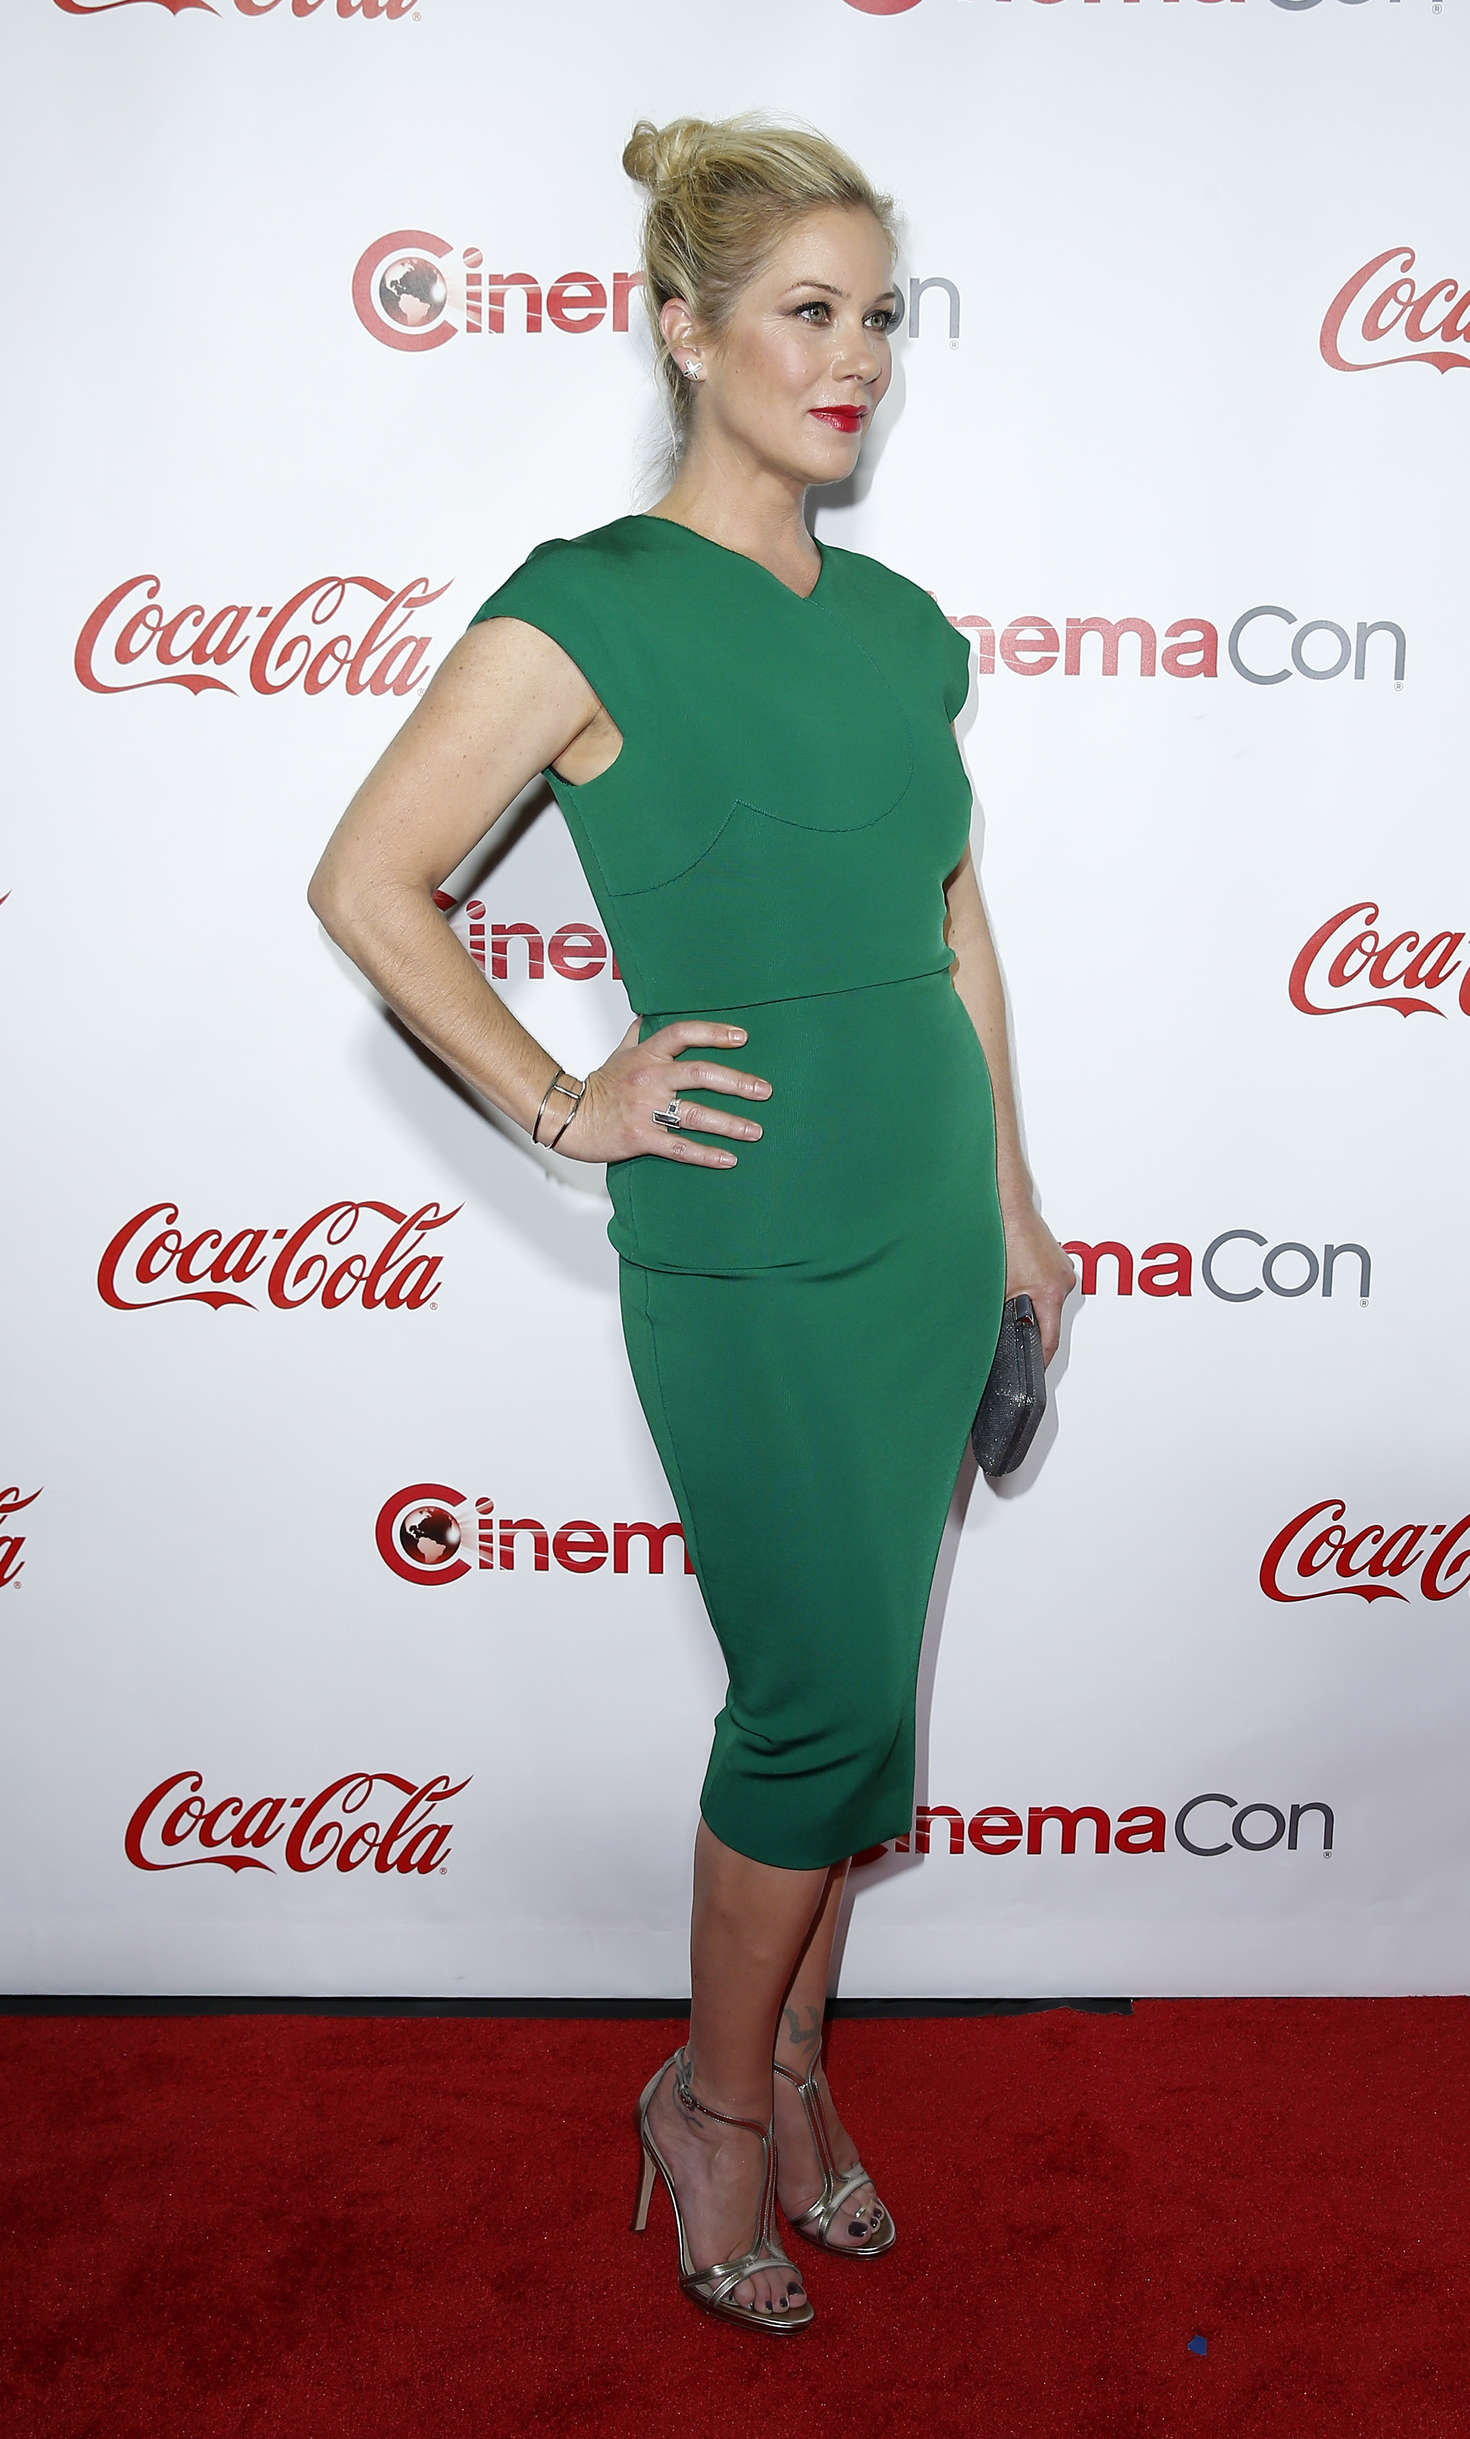 Christina Applegate Big Screen Achievement Awards at CinemaCon in Las Vegas